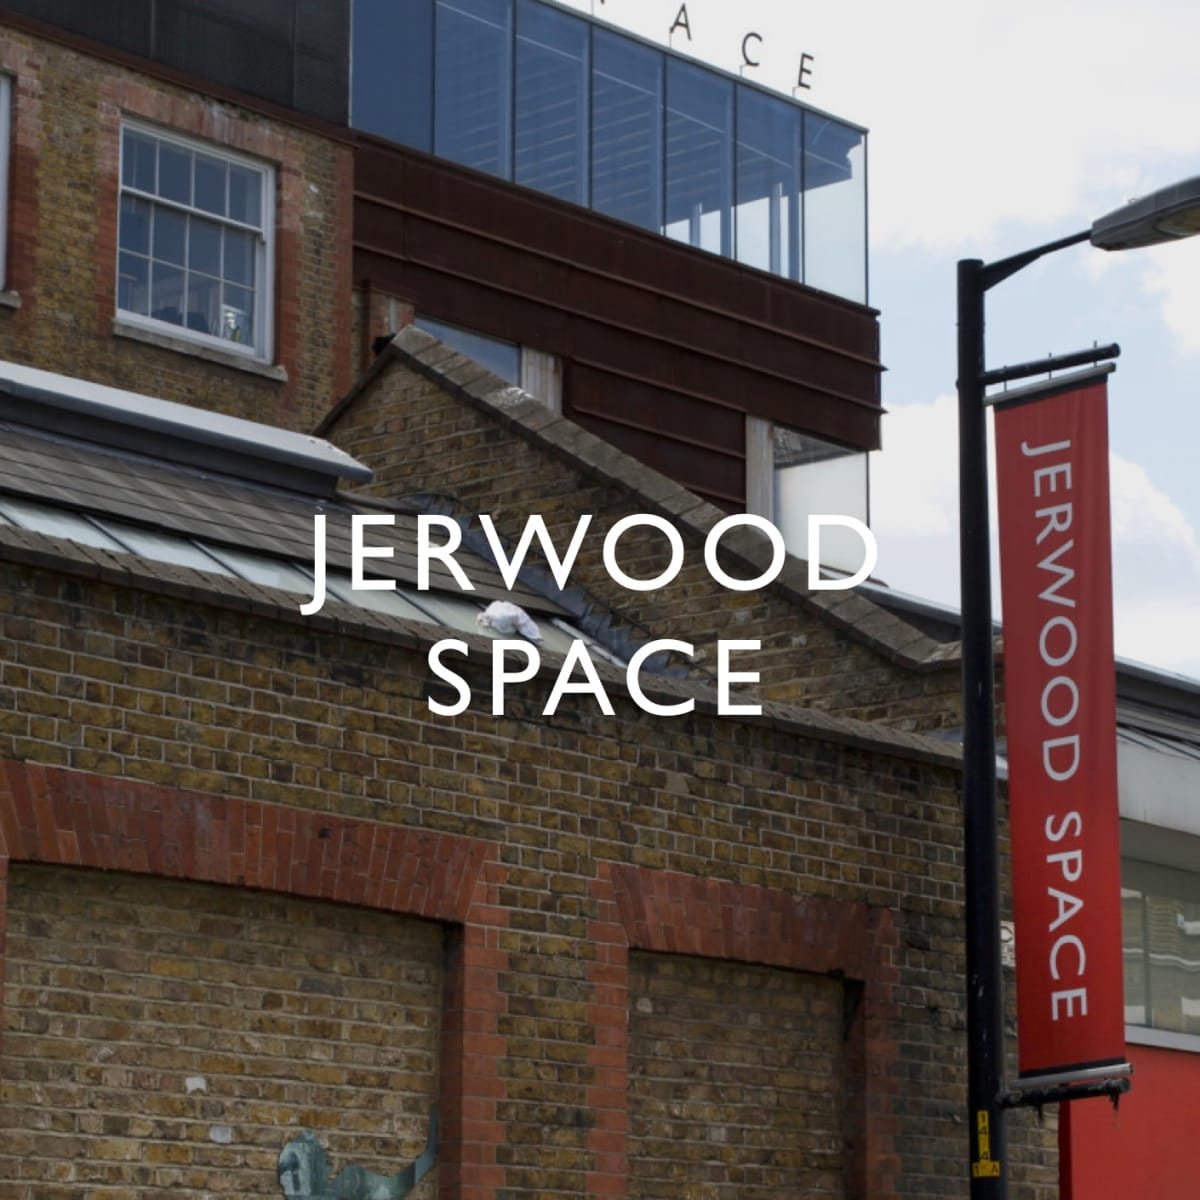 Exterior Jerwood Space. Photo: Tracy Zanelli